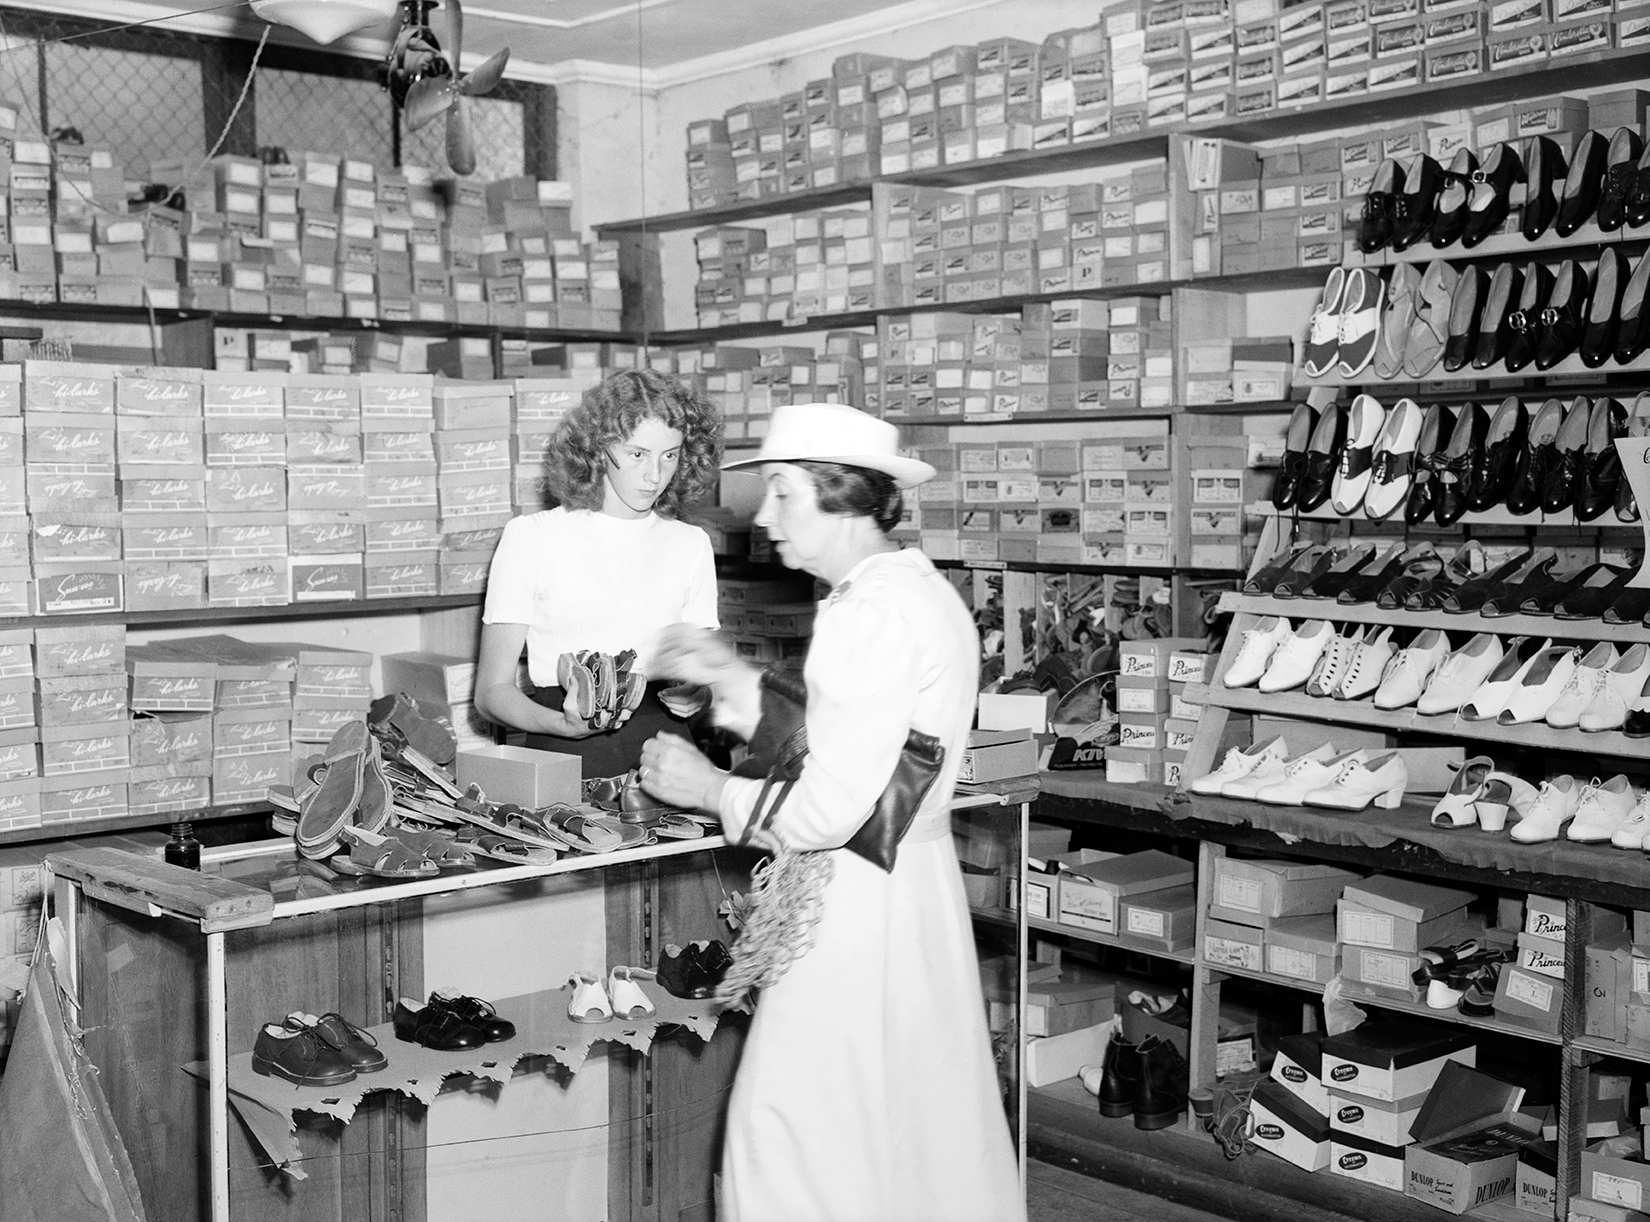 Shoe Shop, Penrith by Max Dupain, 1948